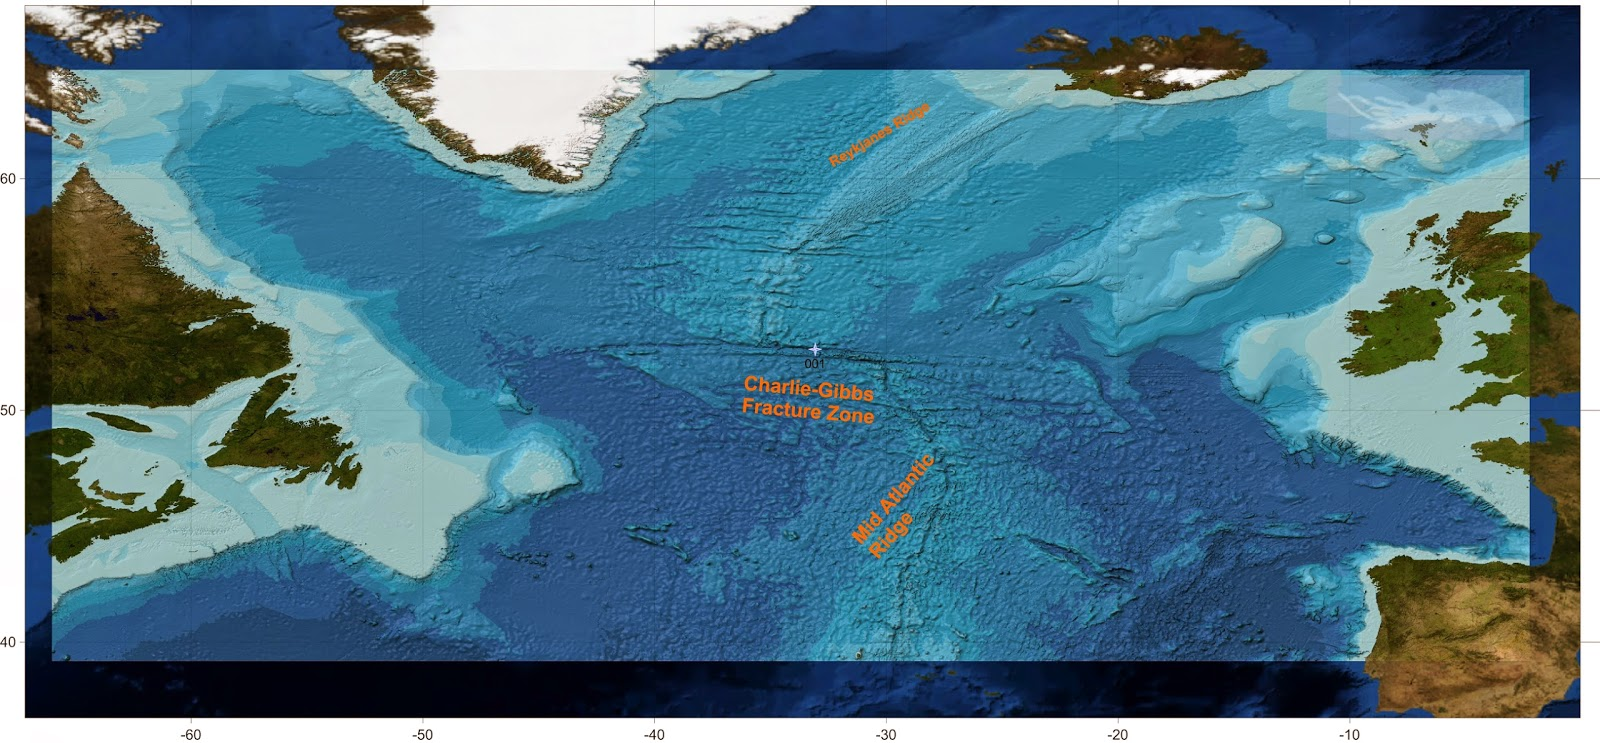 map of the mid atlantic ridge and charlie gibbs fracture zone